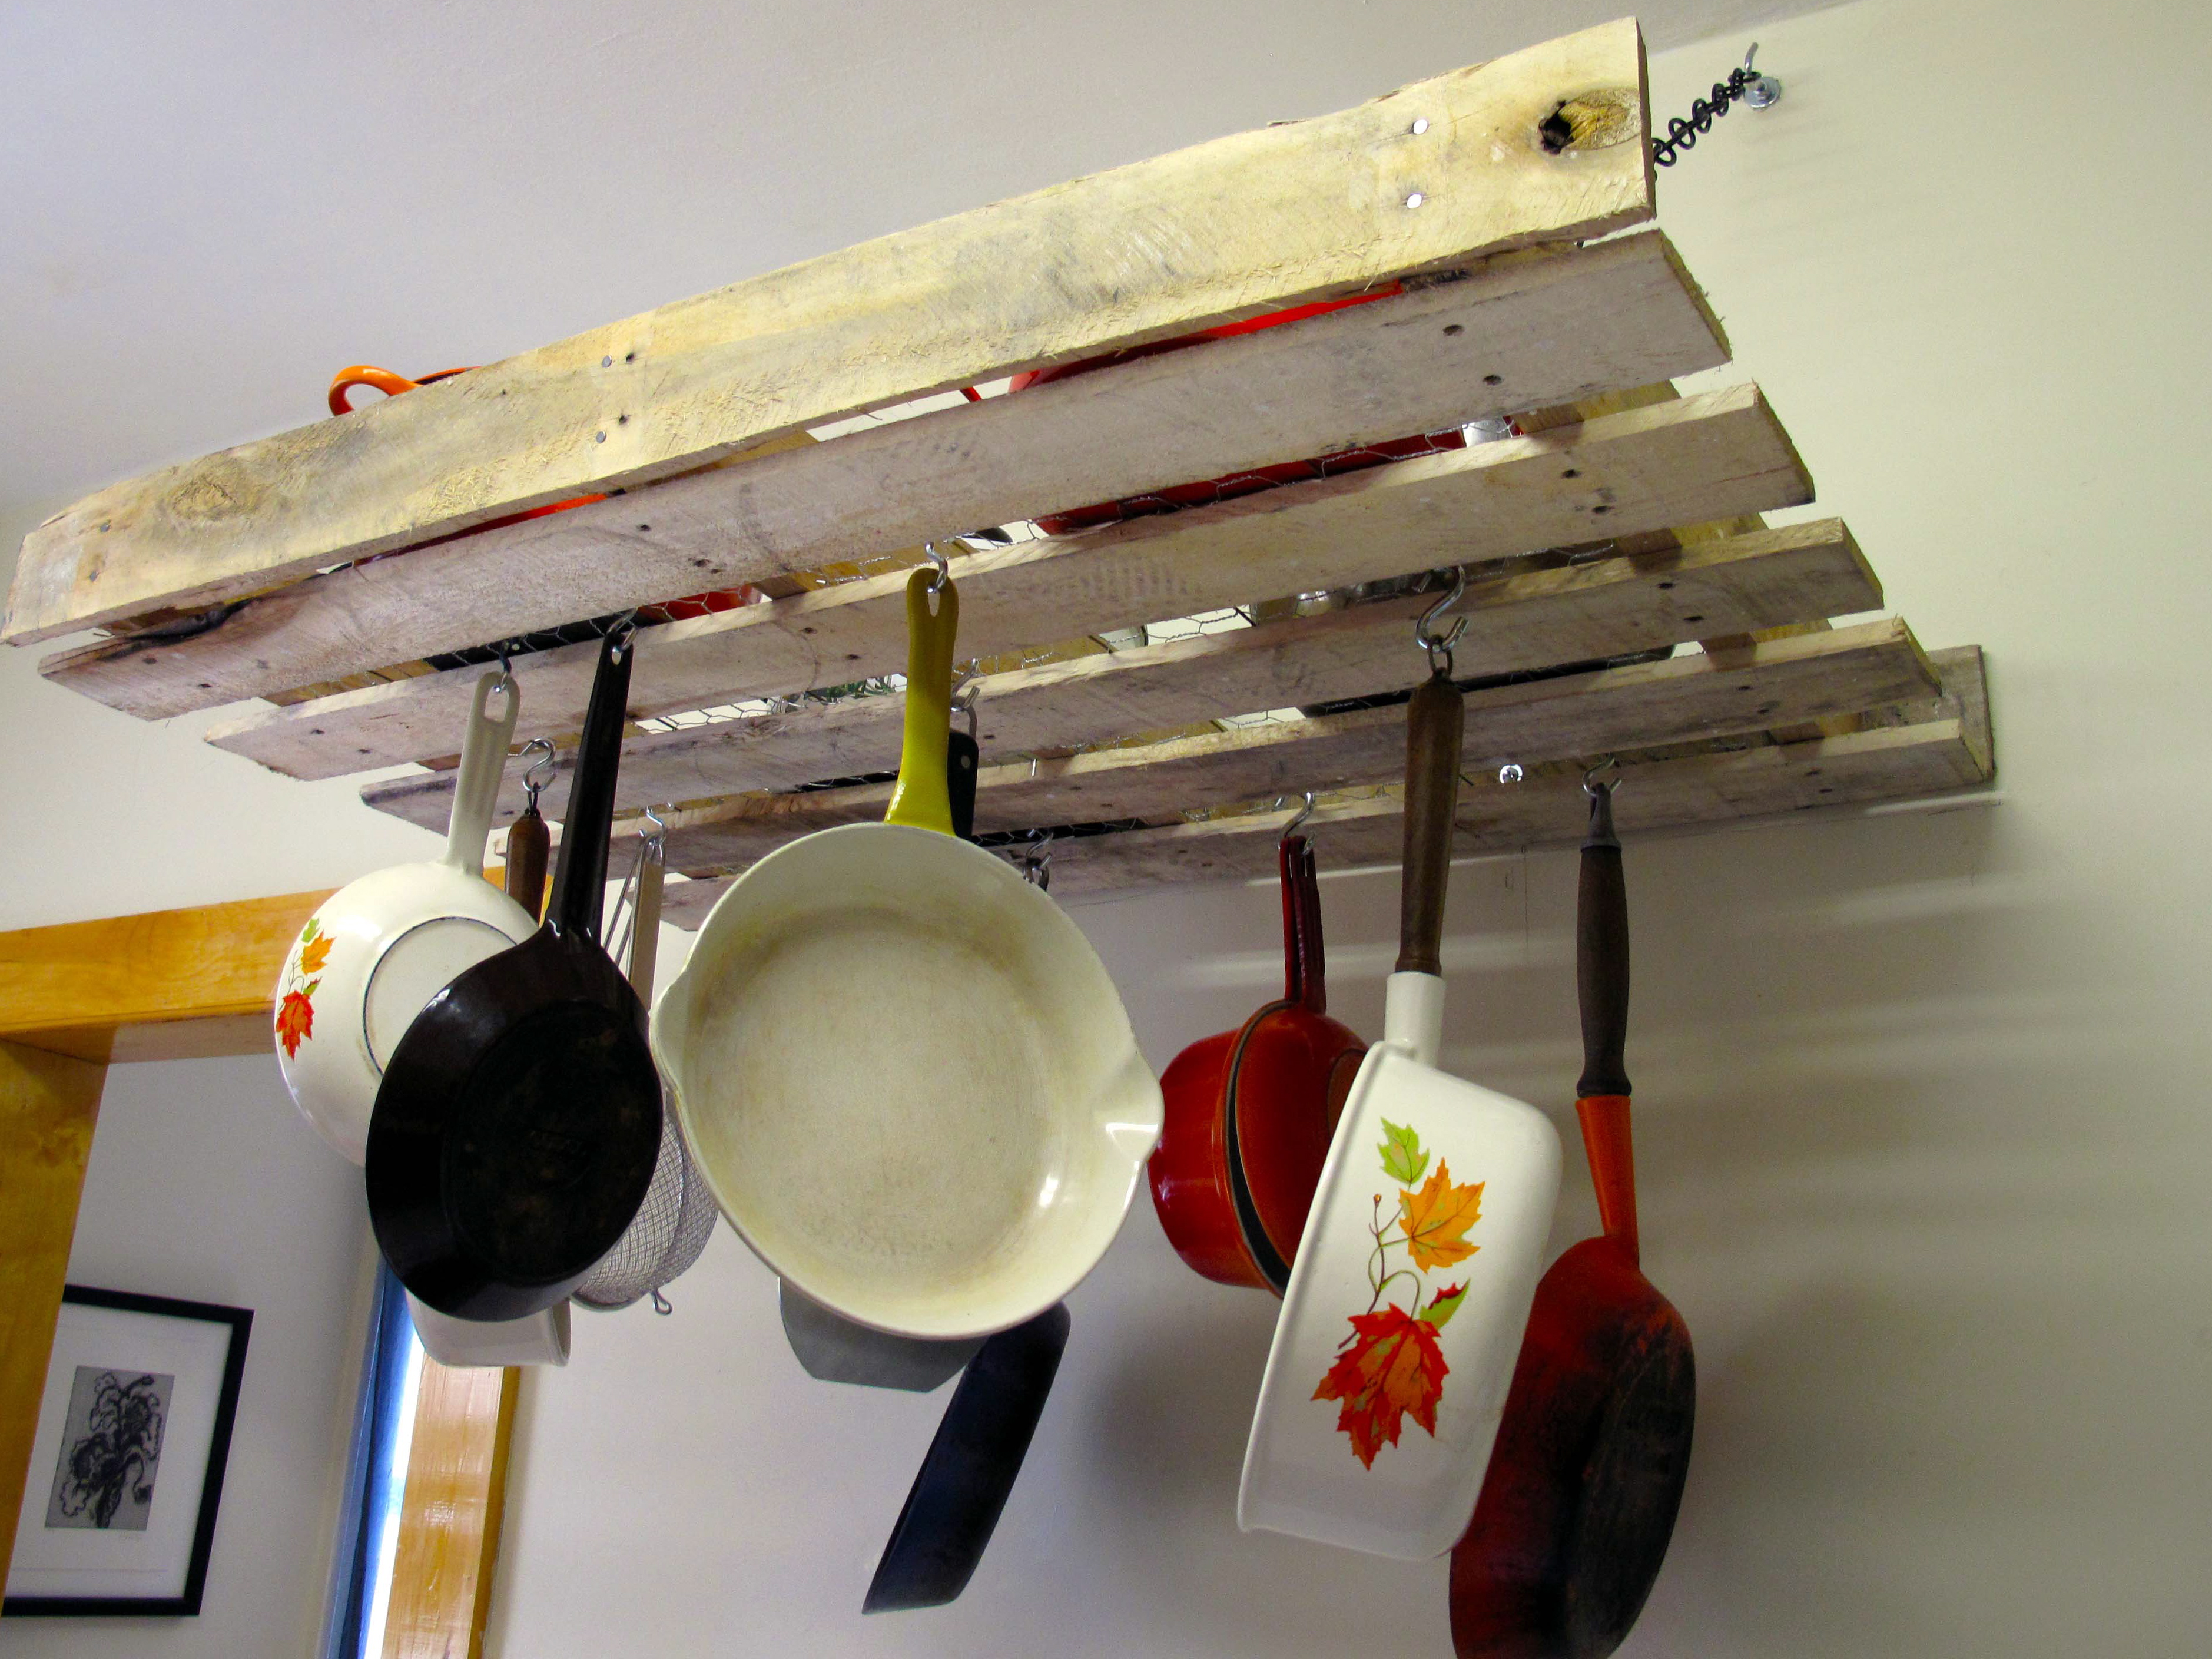 quick view more options finish a wall mounted pot rack kitchen, Kitchen design